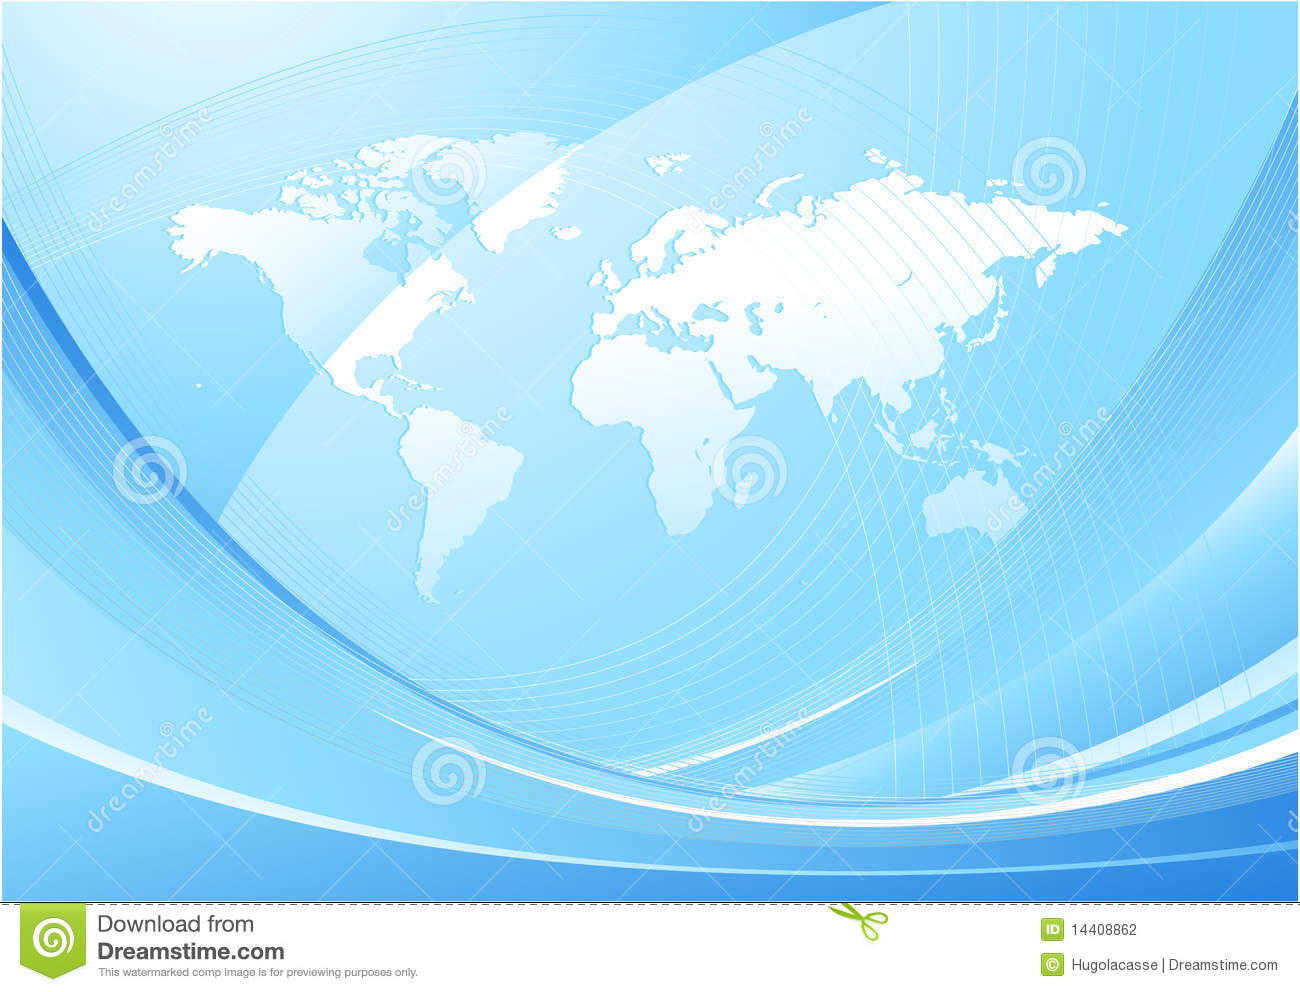 World map background design stock illustration illustration of world map background design gumiabroncs Image collections